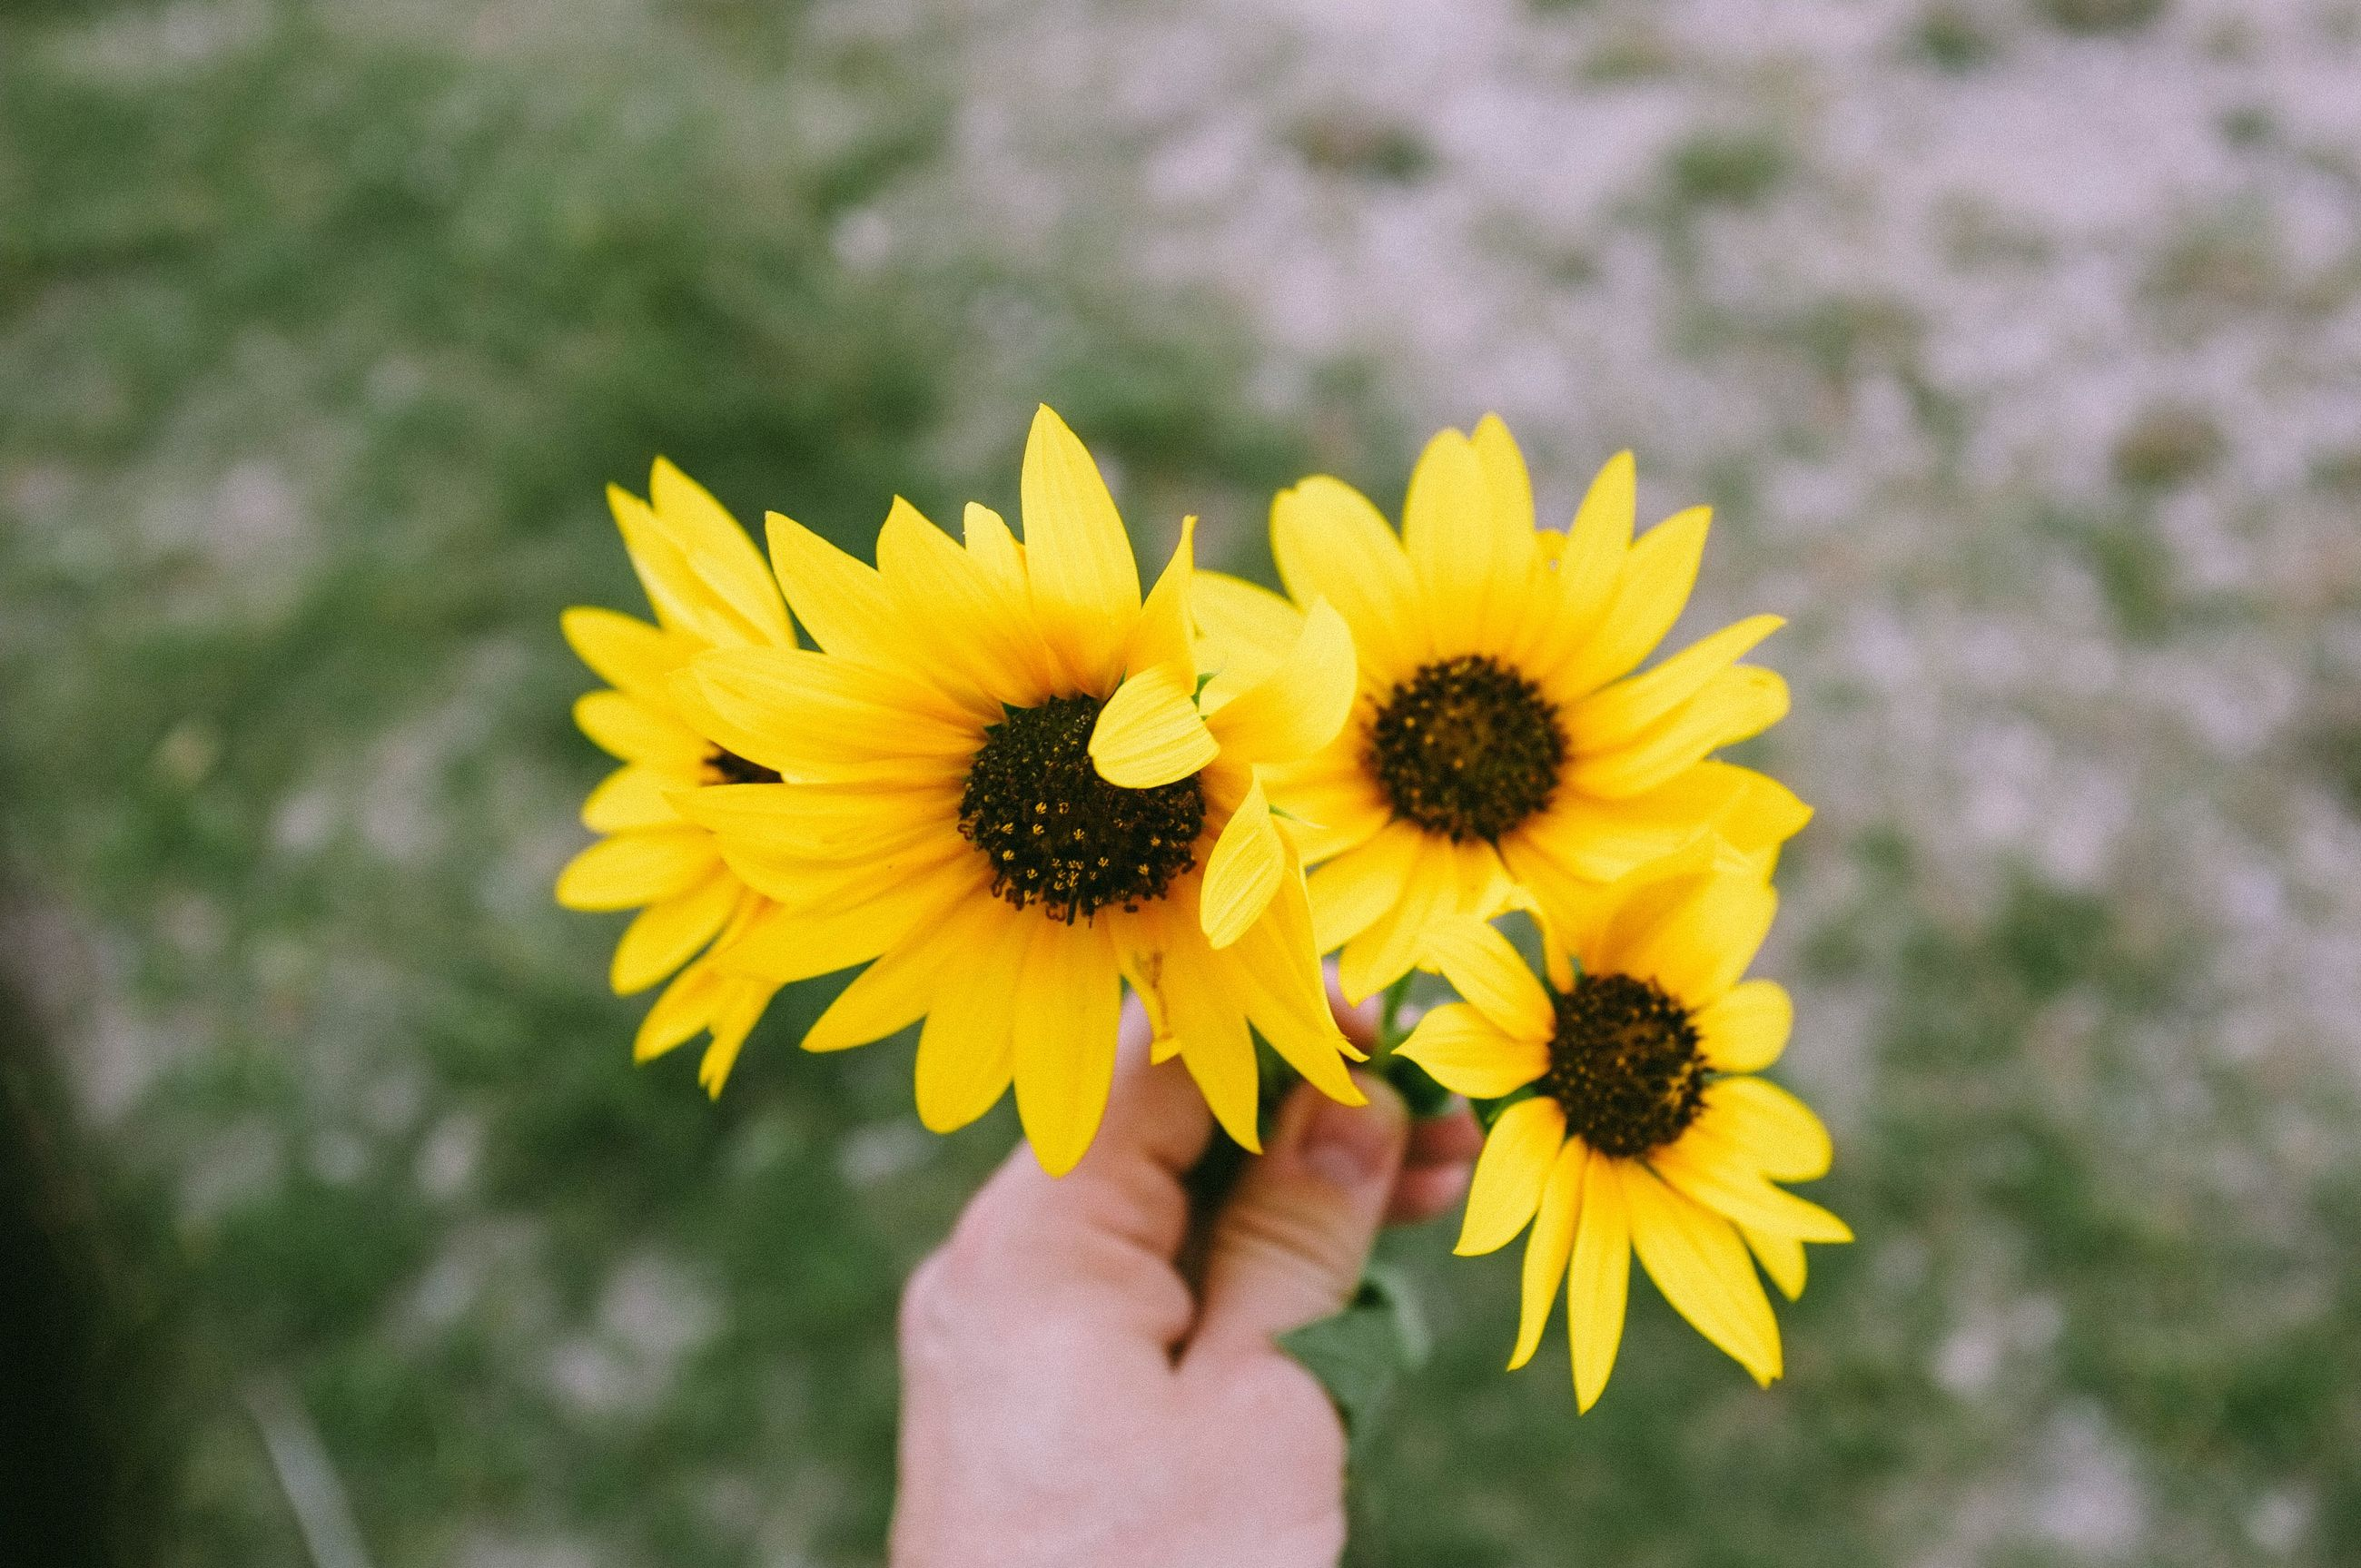 yellow, flower, flowering plant, human hand, vulnerability, fragility, freshness, human body part, hand, flower head, one person, plant, petal, inflorescence, holding, finger, real people, human finger, focus on foreground, close-up, body part, pollen, outdoors, human limb